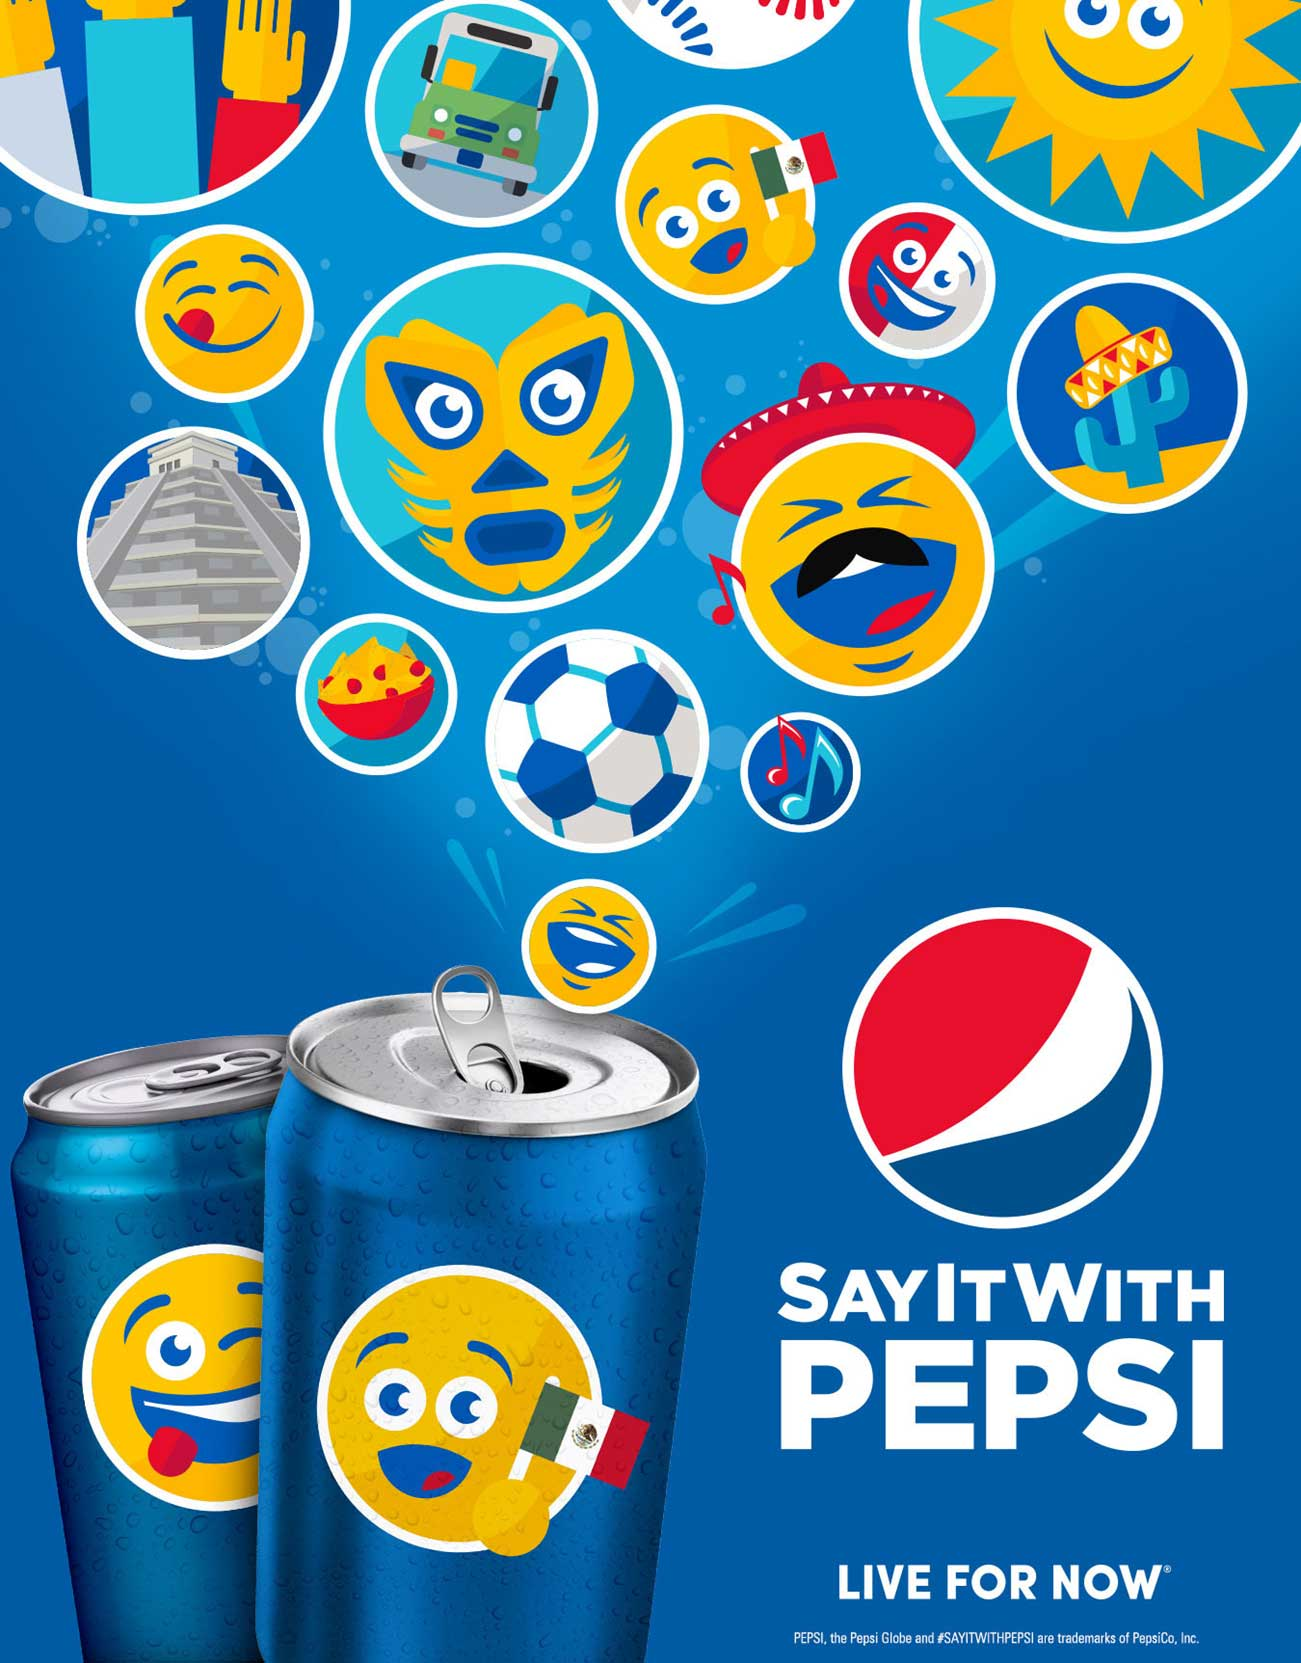 brand elements of pepsi Start studying mkt chpt 10 through repeated exposures of the various brand elements nutrasweet got a boost after both coke and pepsi started.